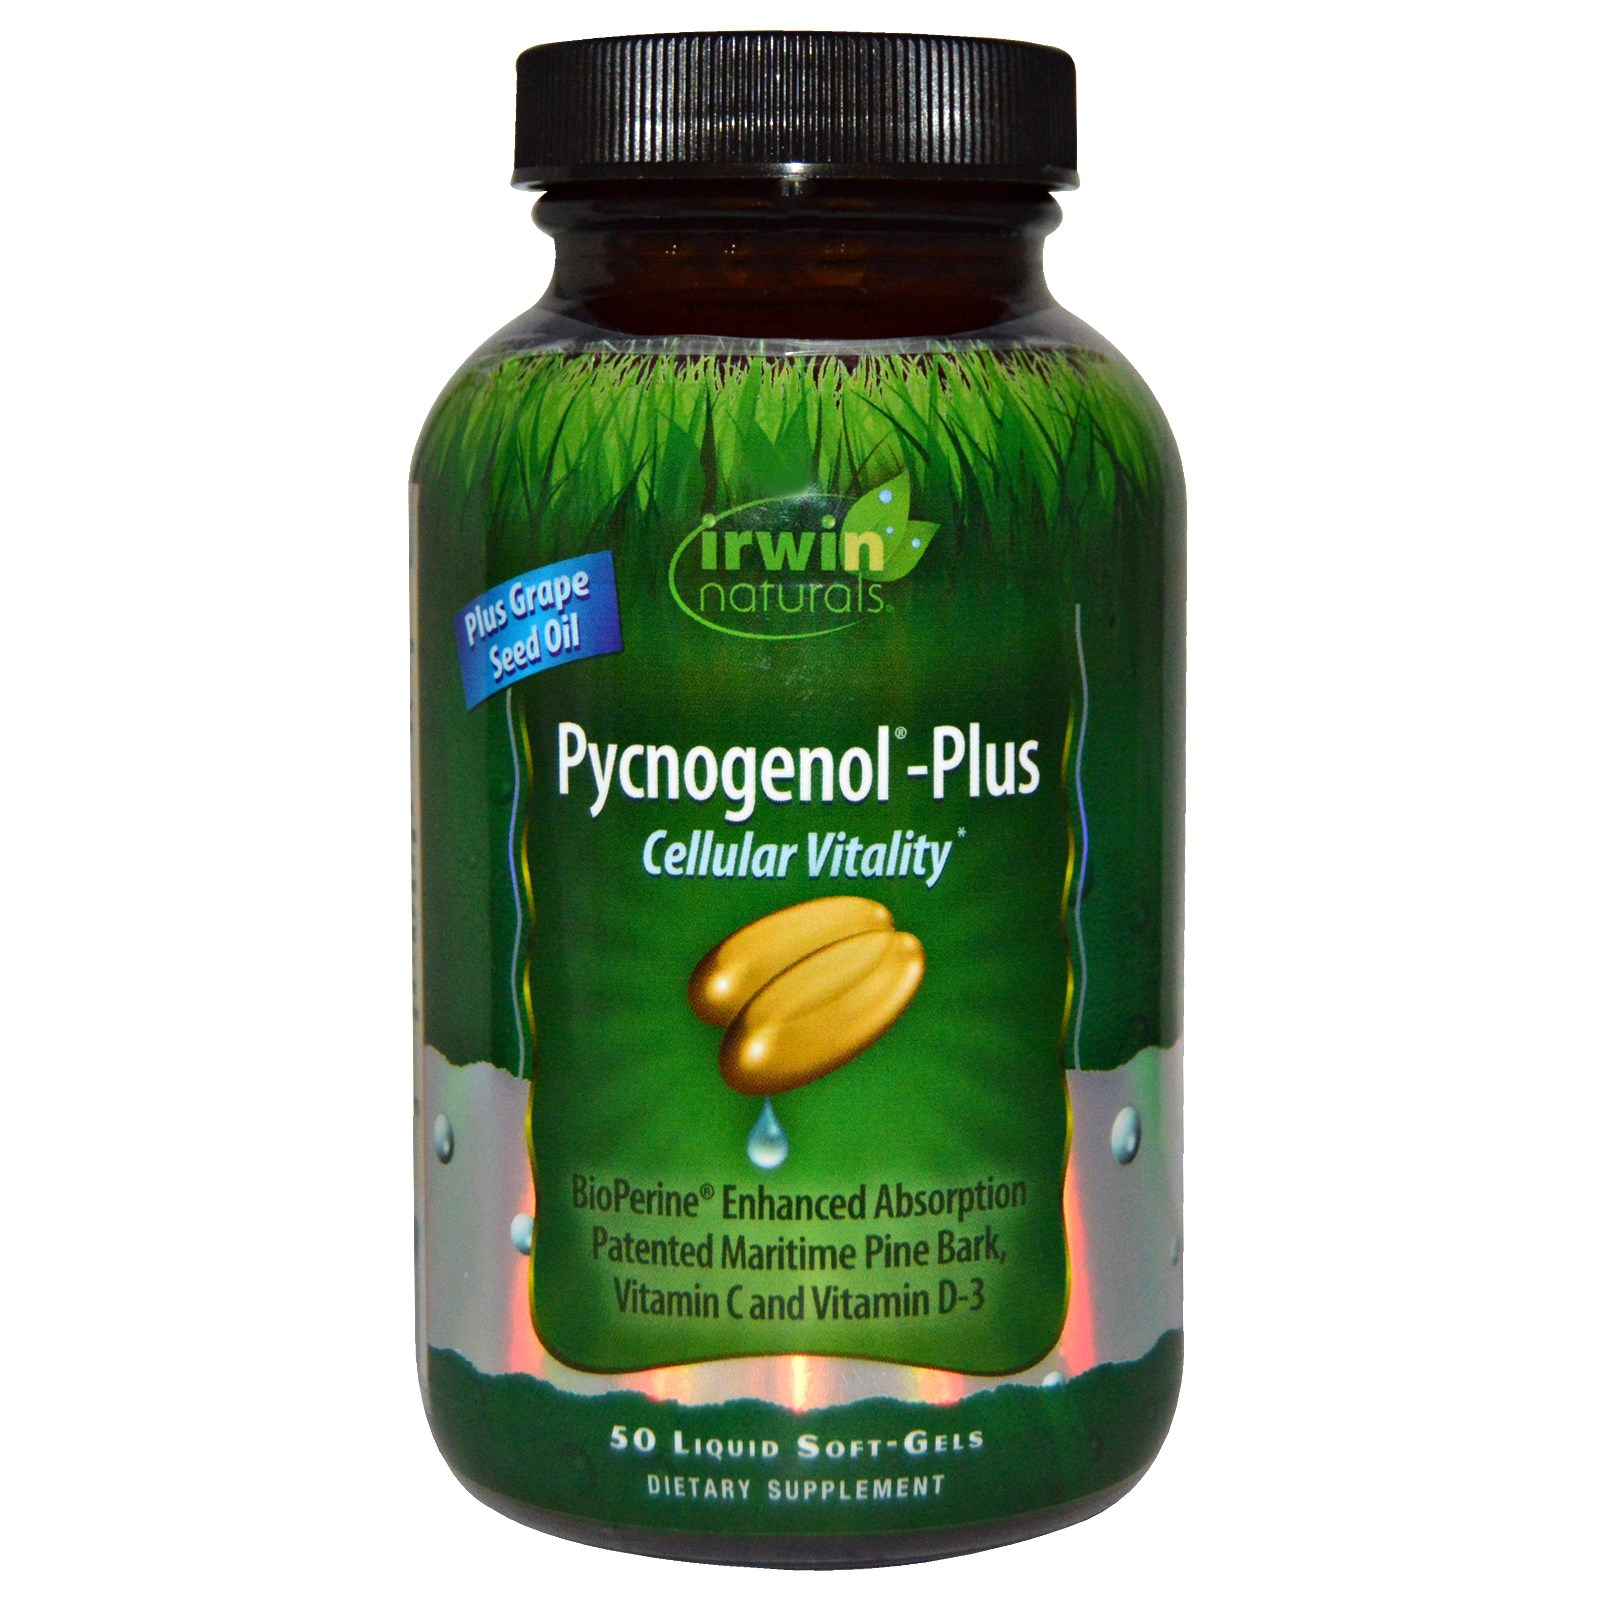 Irwin Naturals, Pycnogenol-Plus Cellular Vitality, 50 Liquid Soft-Gels